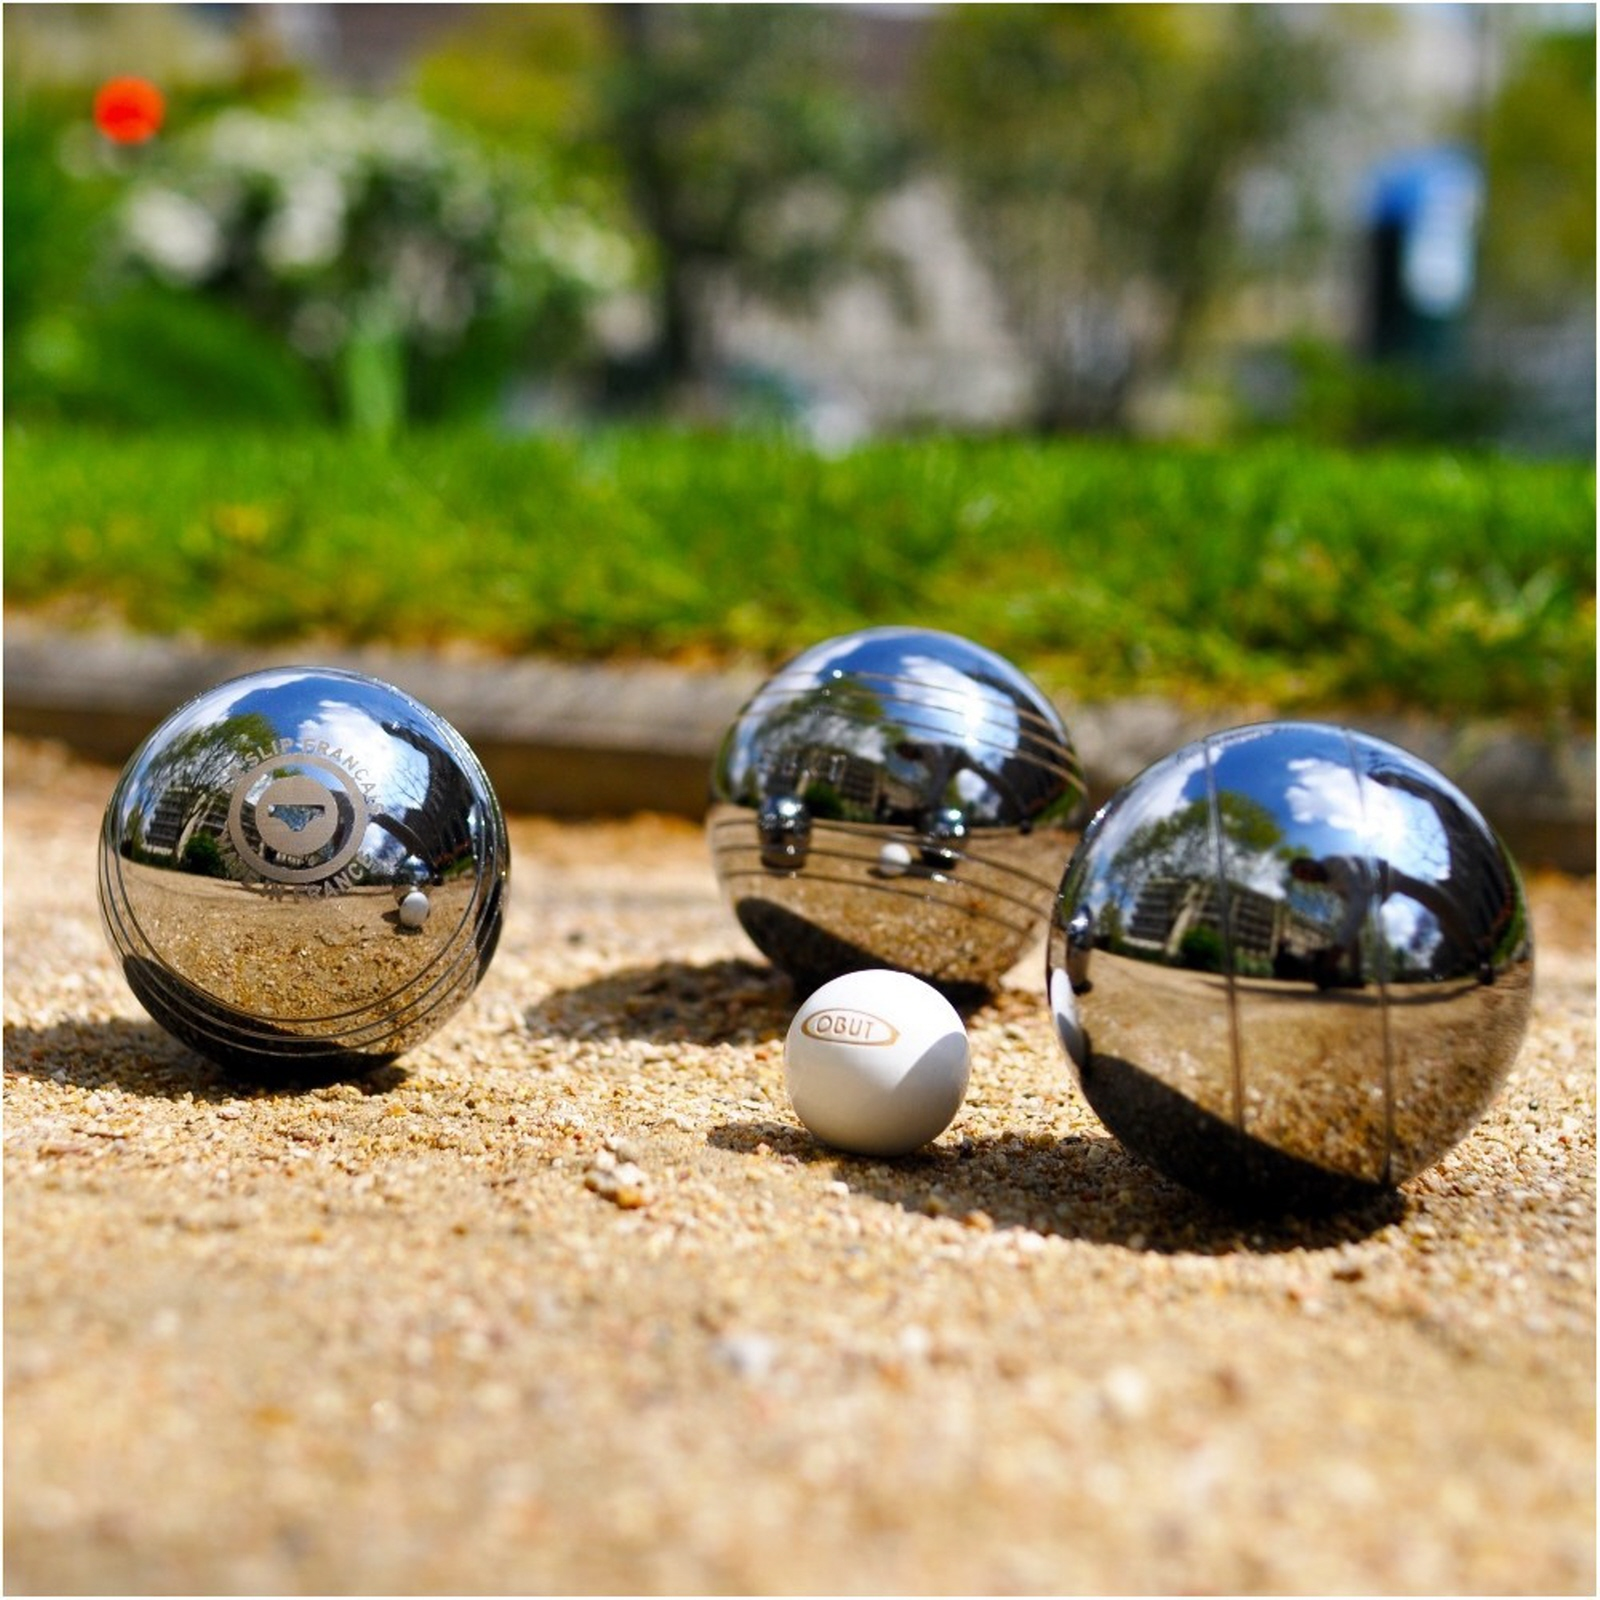 illustration-petanque_1-1545473040